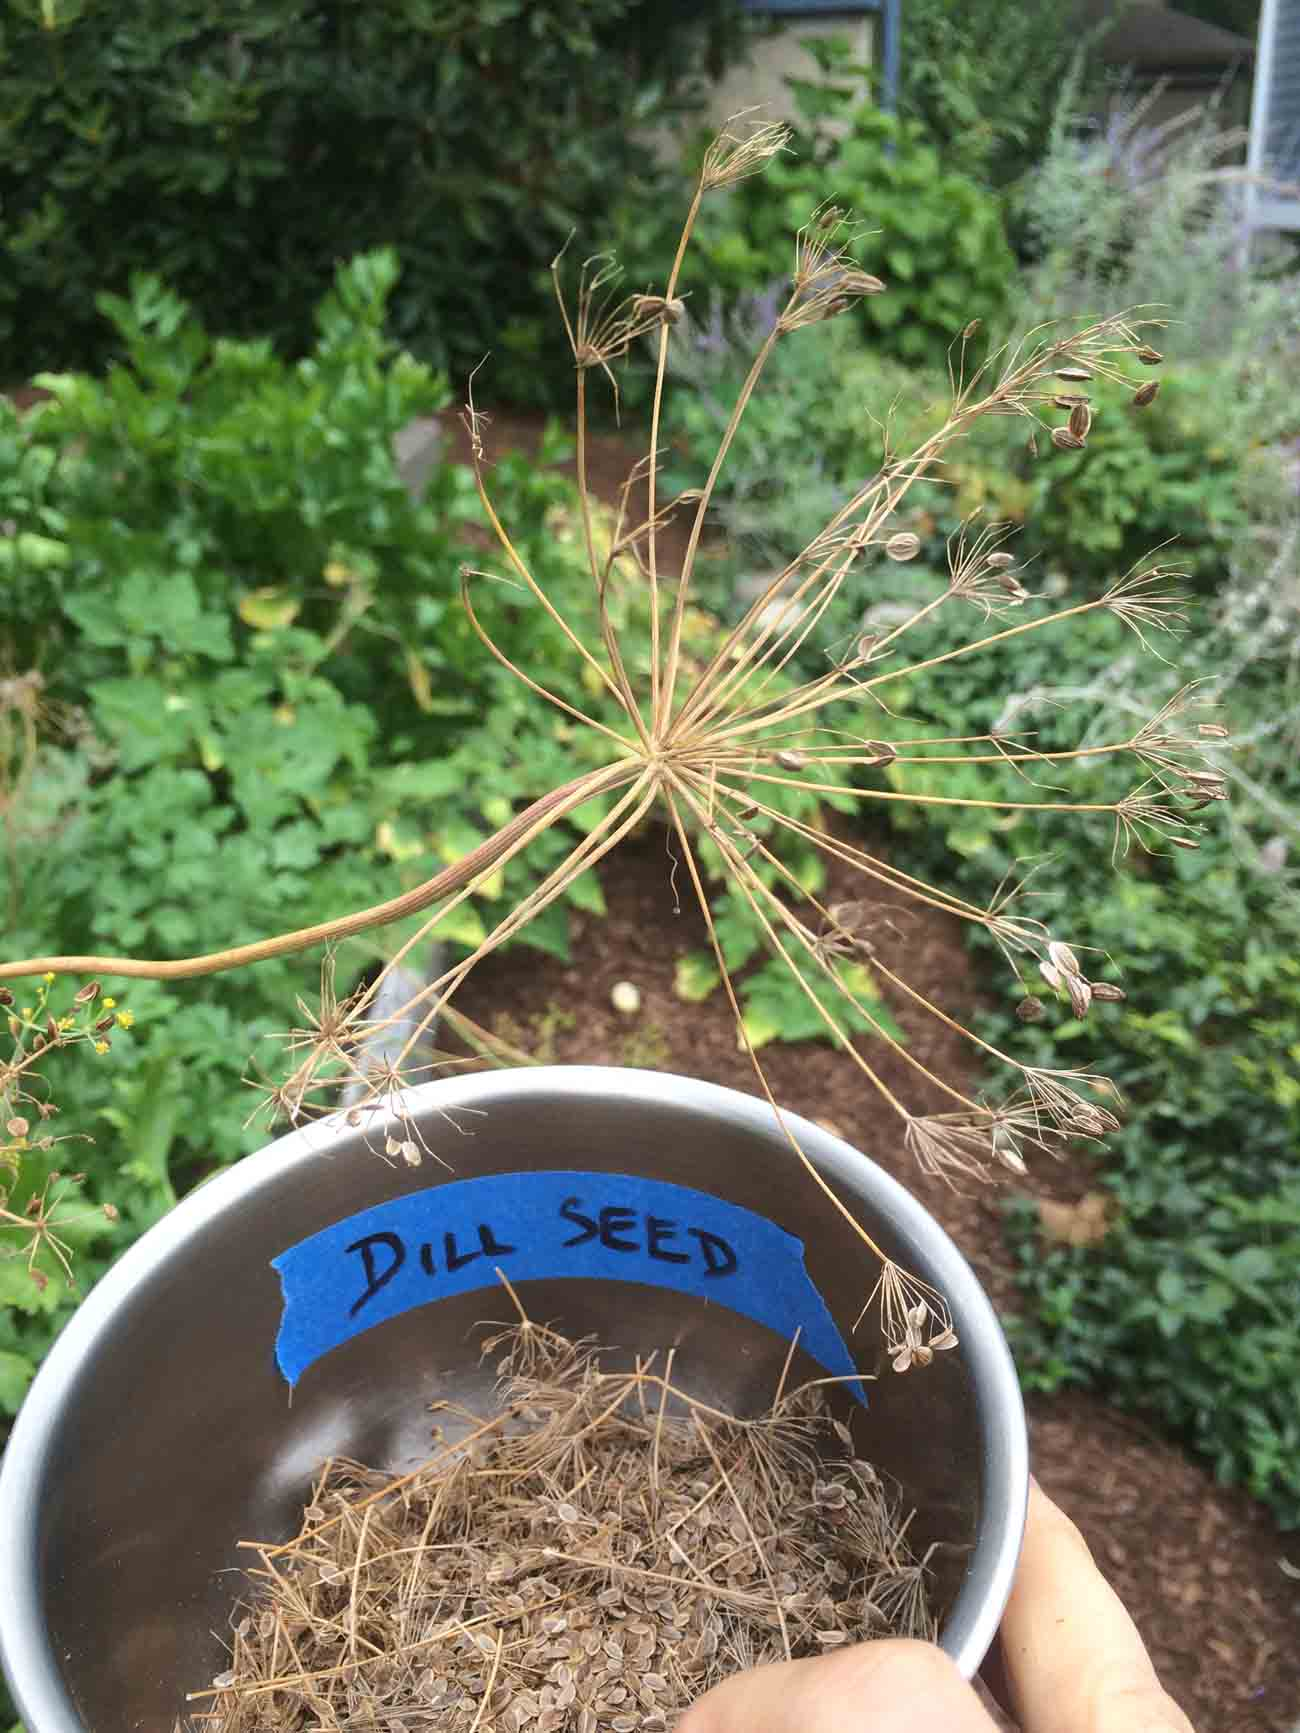 Saving dill seeds